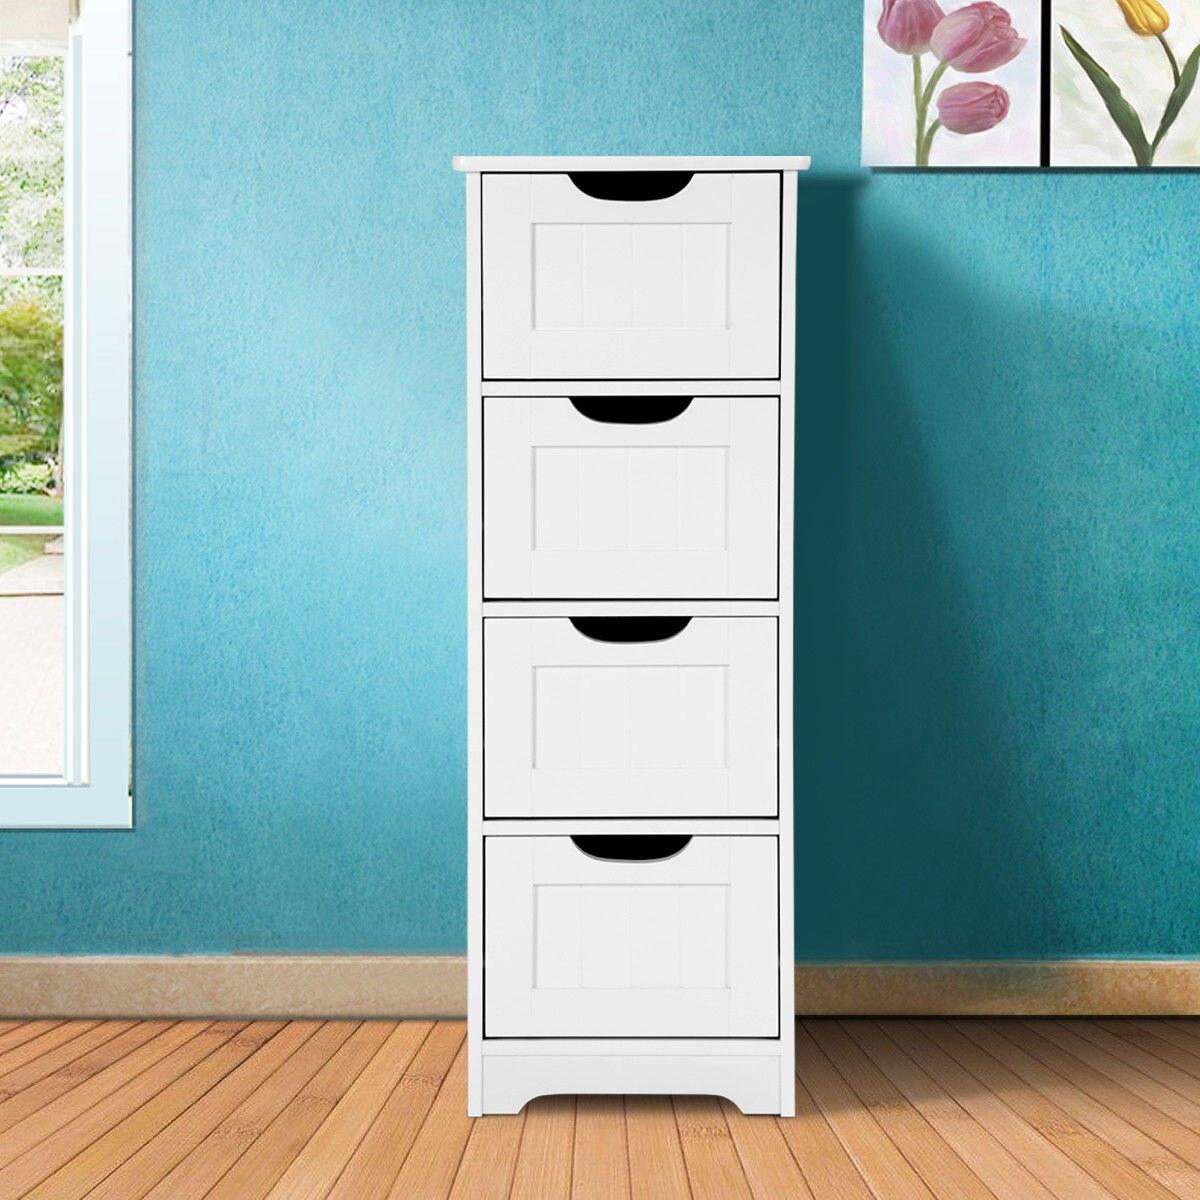 Costway Costway White Floor Storage Cabinet Bathroom Organizer Free Standing 234 Drawers Rakuten inside size 1200 X 1200